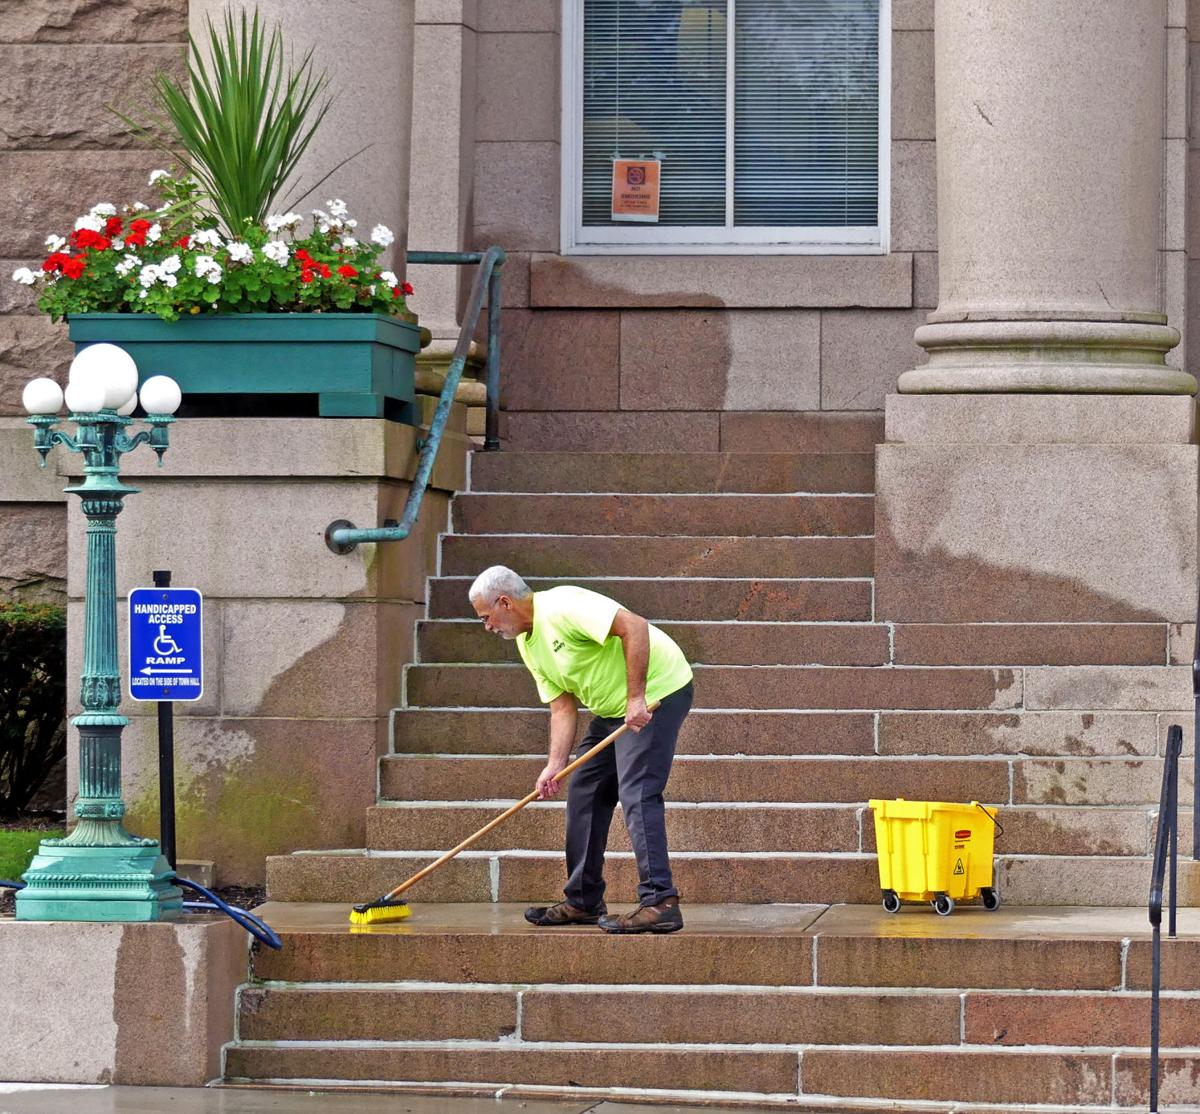 091119 WES Town Hall steps scrubbed 15.JPG